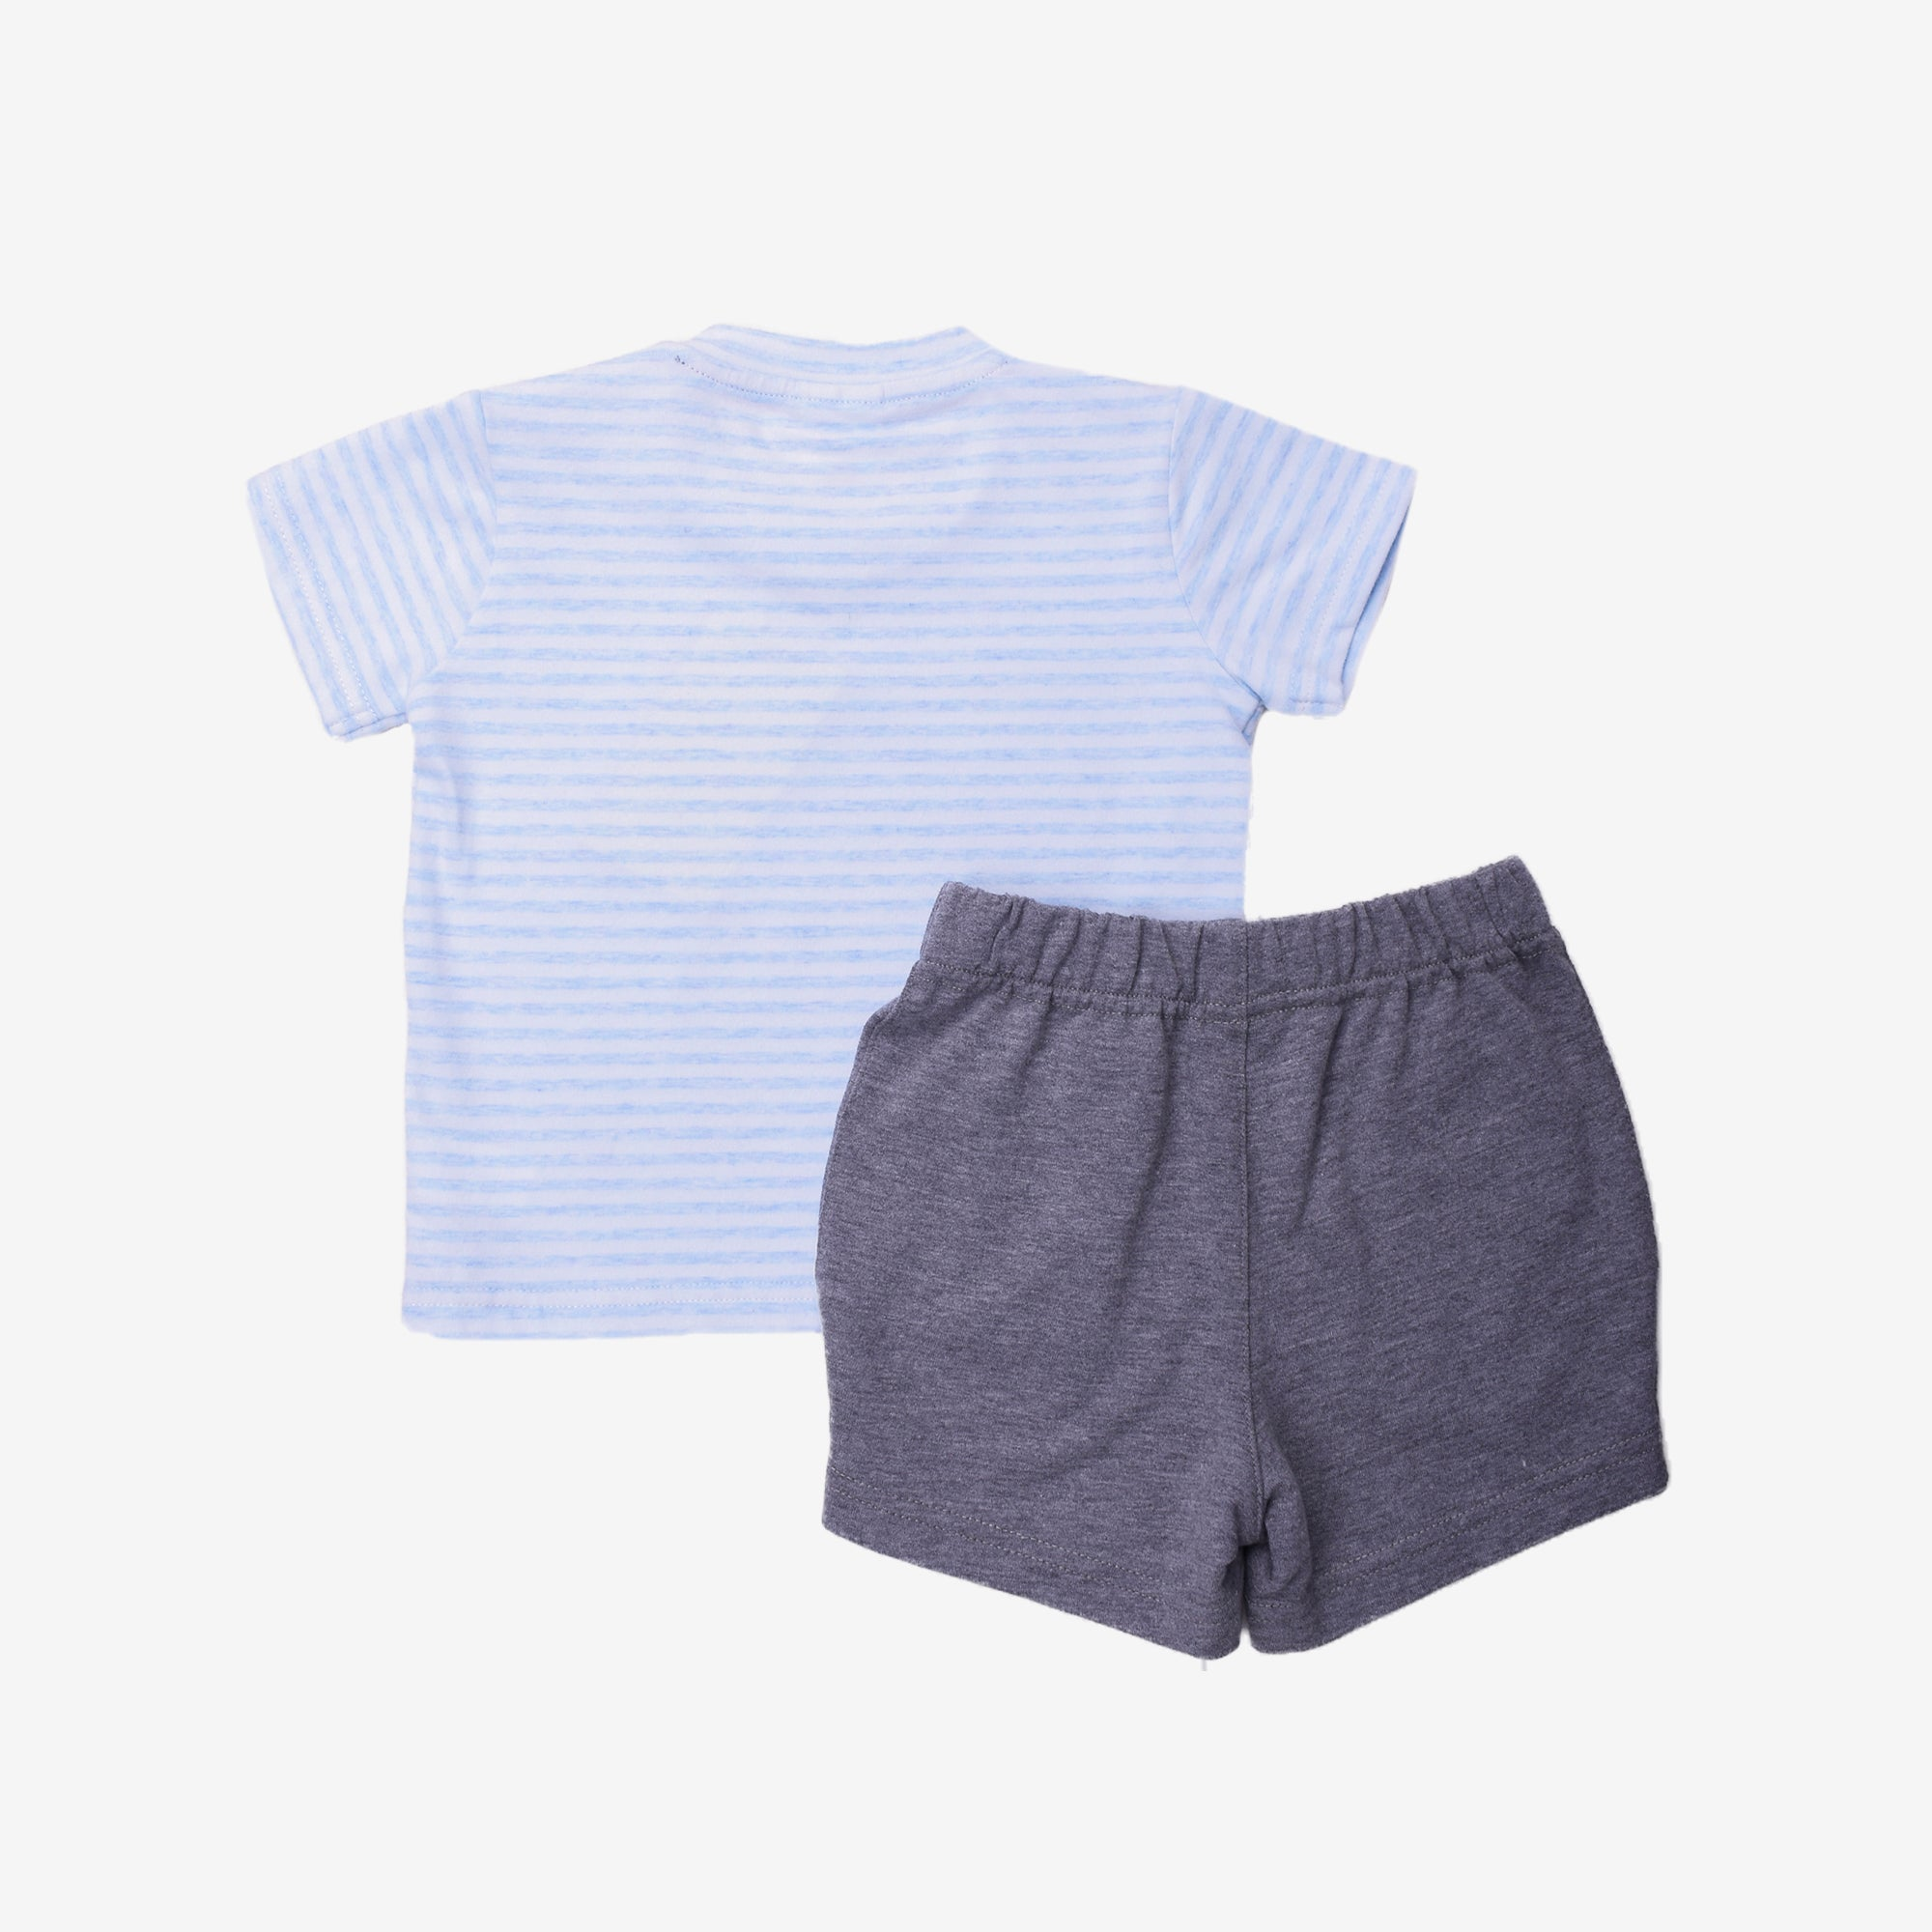 Summer Play-day Short Sleeve Bermuda Set